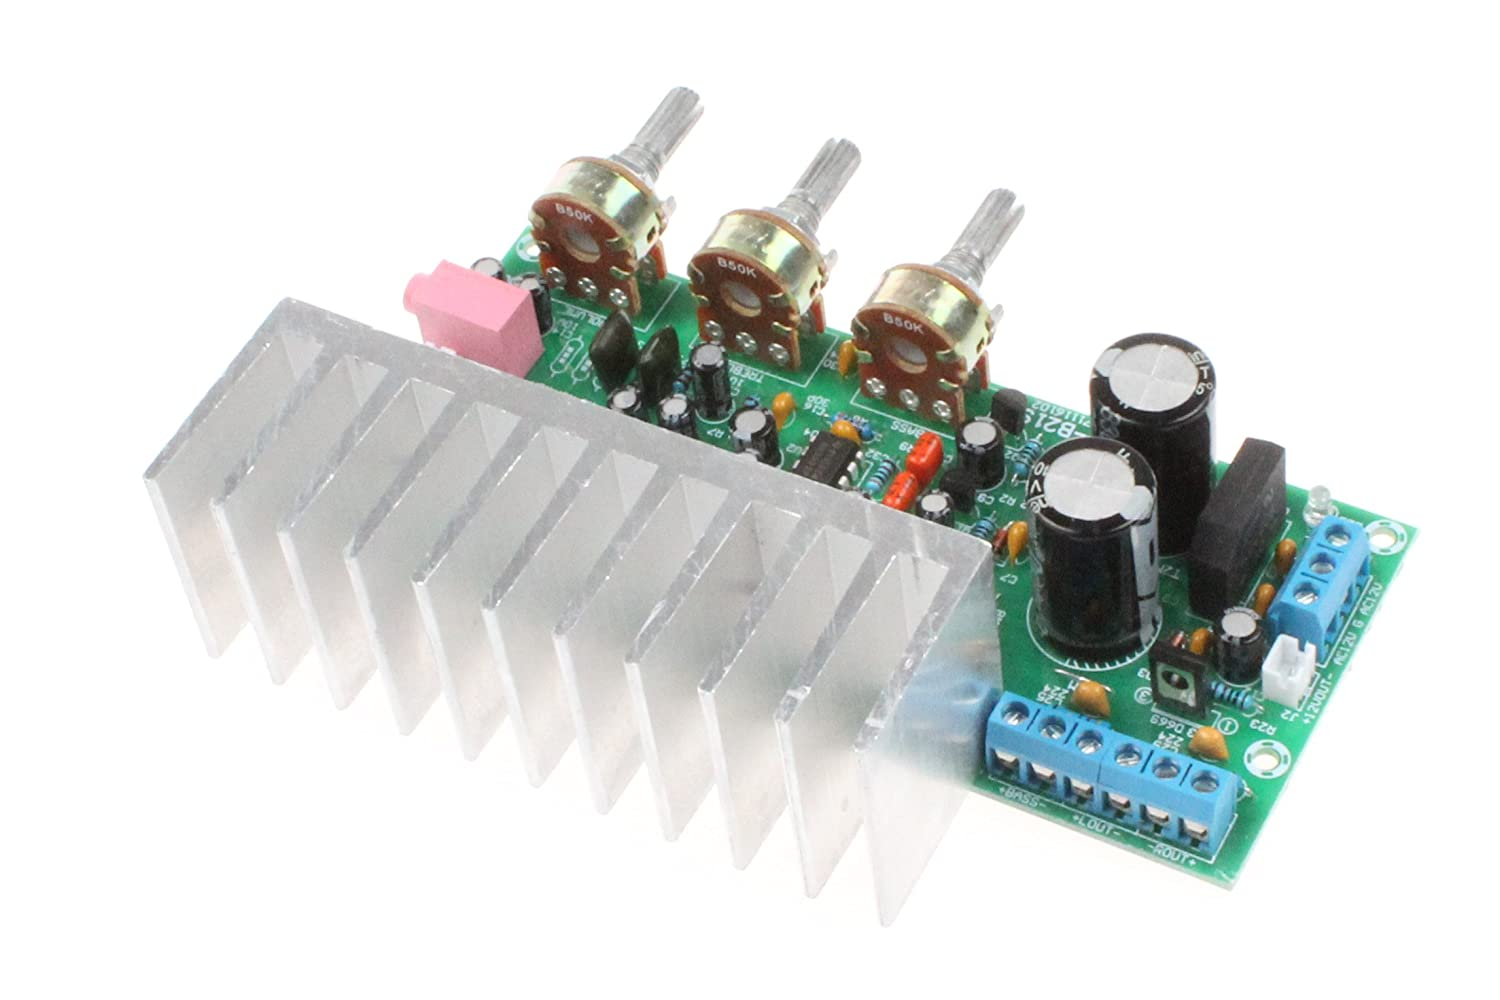 Noyito Tda2050 Tda2030 Ne5532 21 3 Channel Hi Fi Amplifier 32w Hifi Circuit Schematic Electronics Subwoofer Board 18w Compatible With Lm1875 Musical Instruments